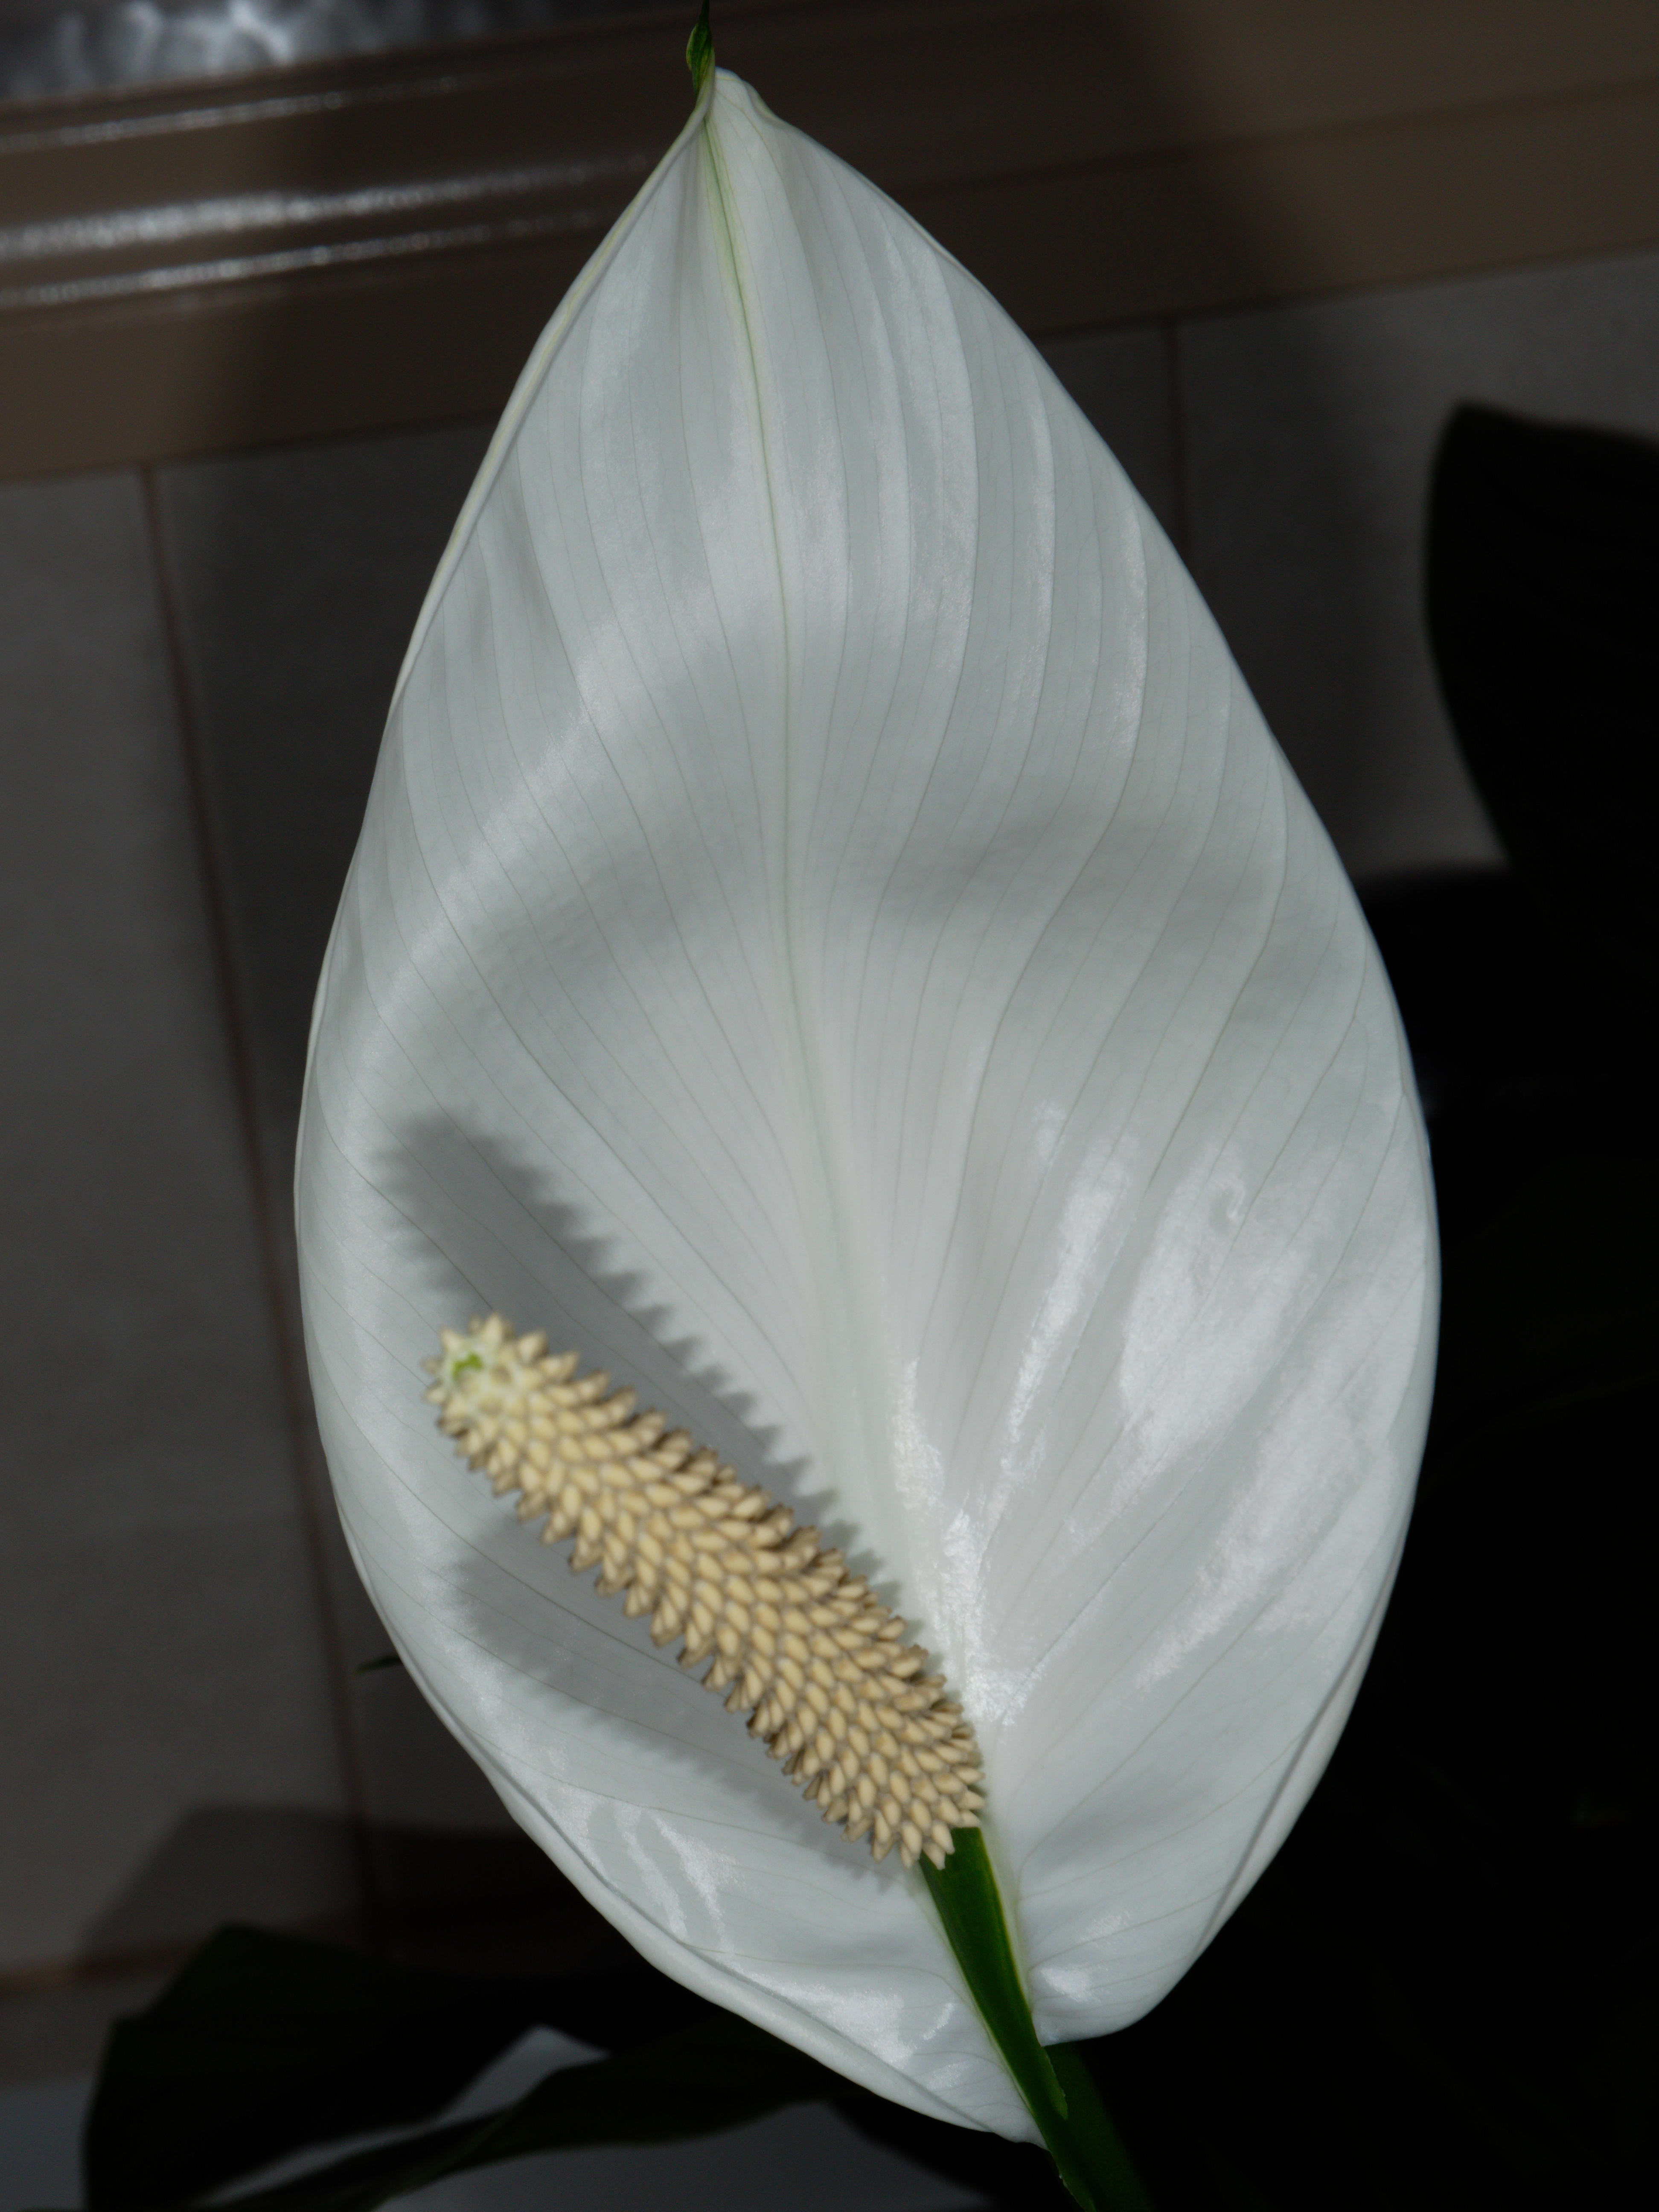 This should be Spathiphyllum-11.jpeg.  Is it missing?